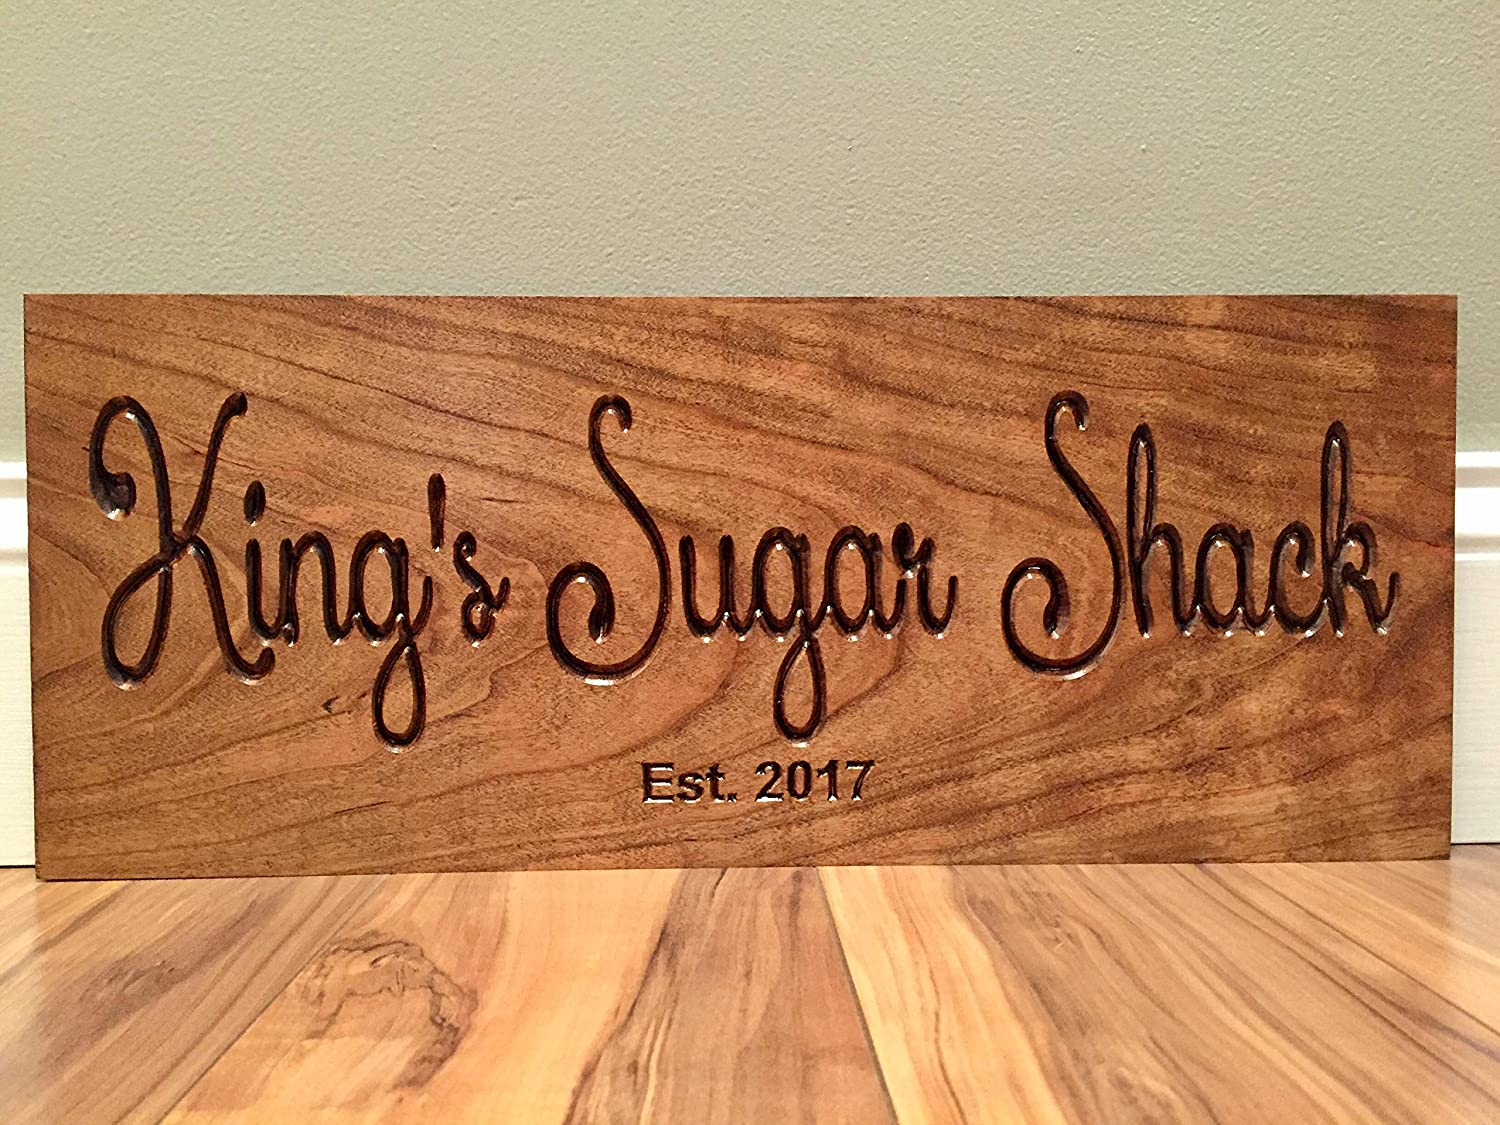 Ruskin352 maple syrup sugar shack sign wooden printed wood sign sign welcome sign shack sign maple tree wood printed wood sign sign outdoor wood plaque